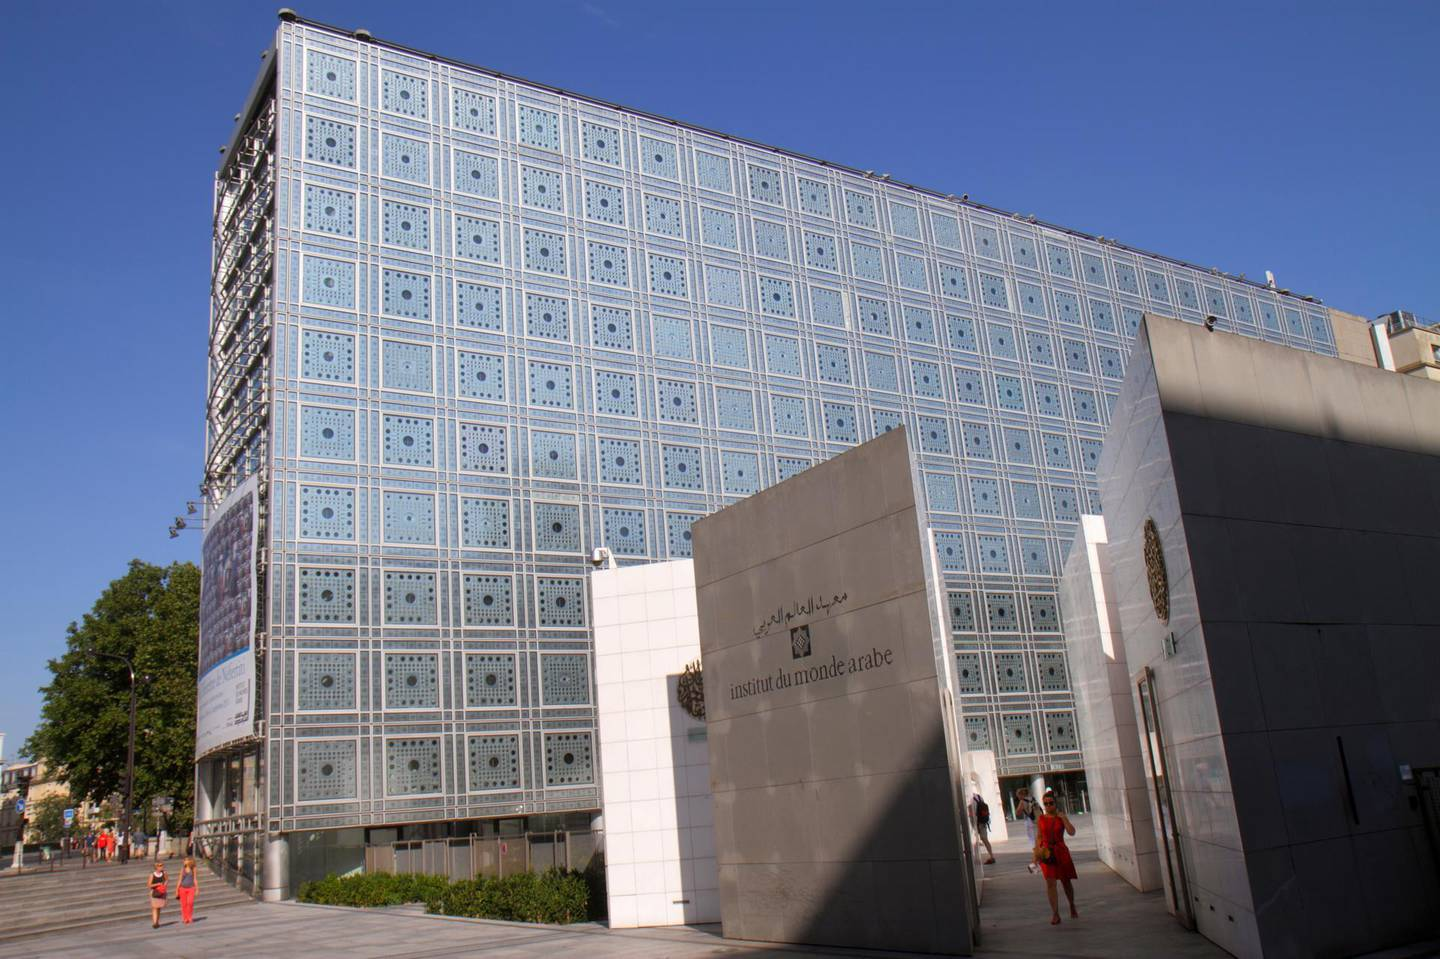 France Europe French Paris 5th arrondissement Arab World Institute AWI Institut du Monde Arabe exterior outside building glass wall. (Photo by: Jeff Greenberg/Universal Images Group via Getty Images)